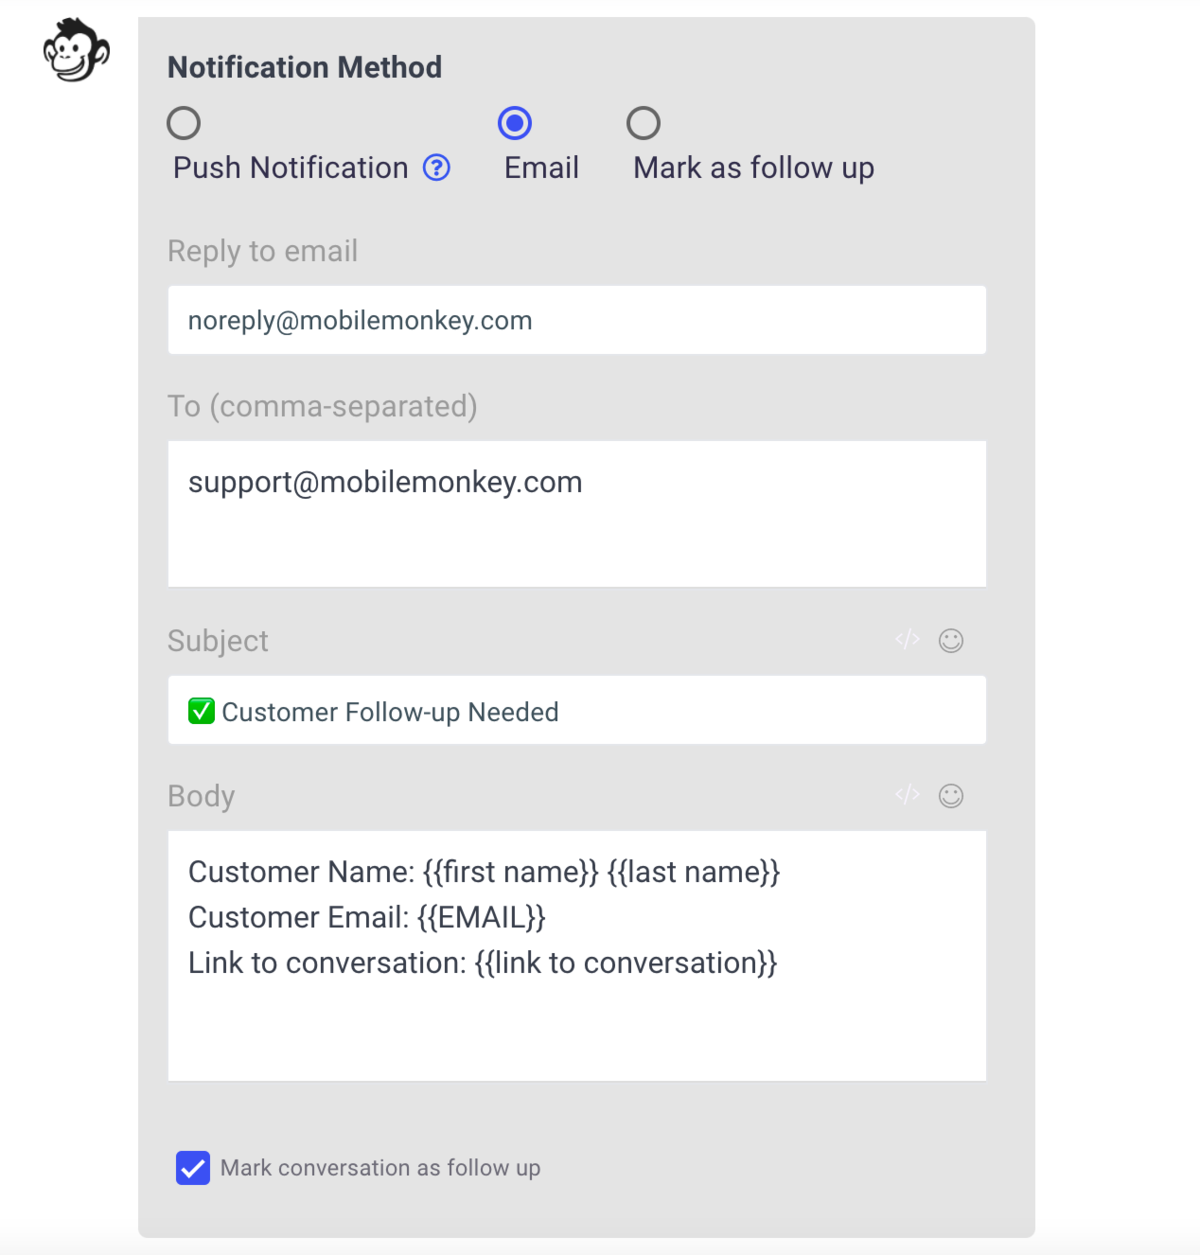 notification for customer followup